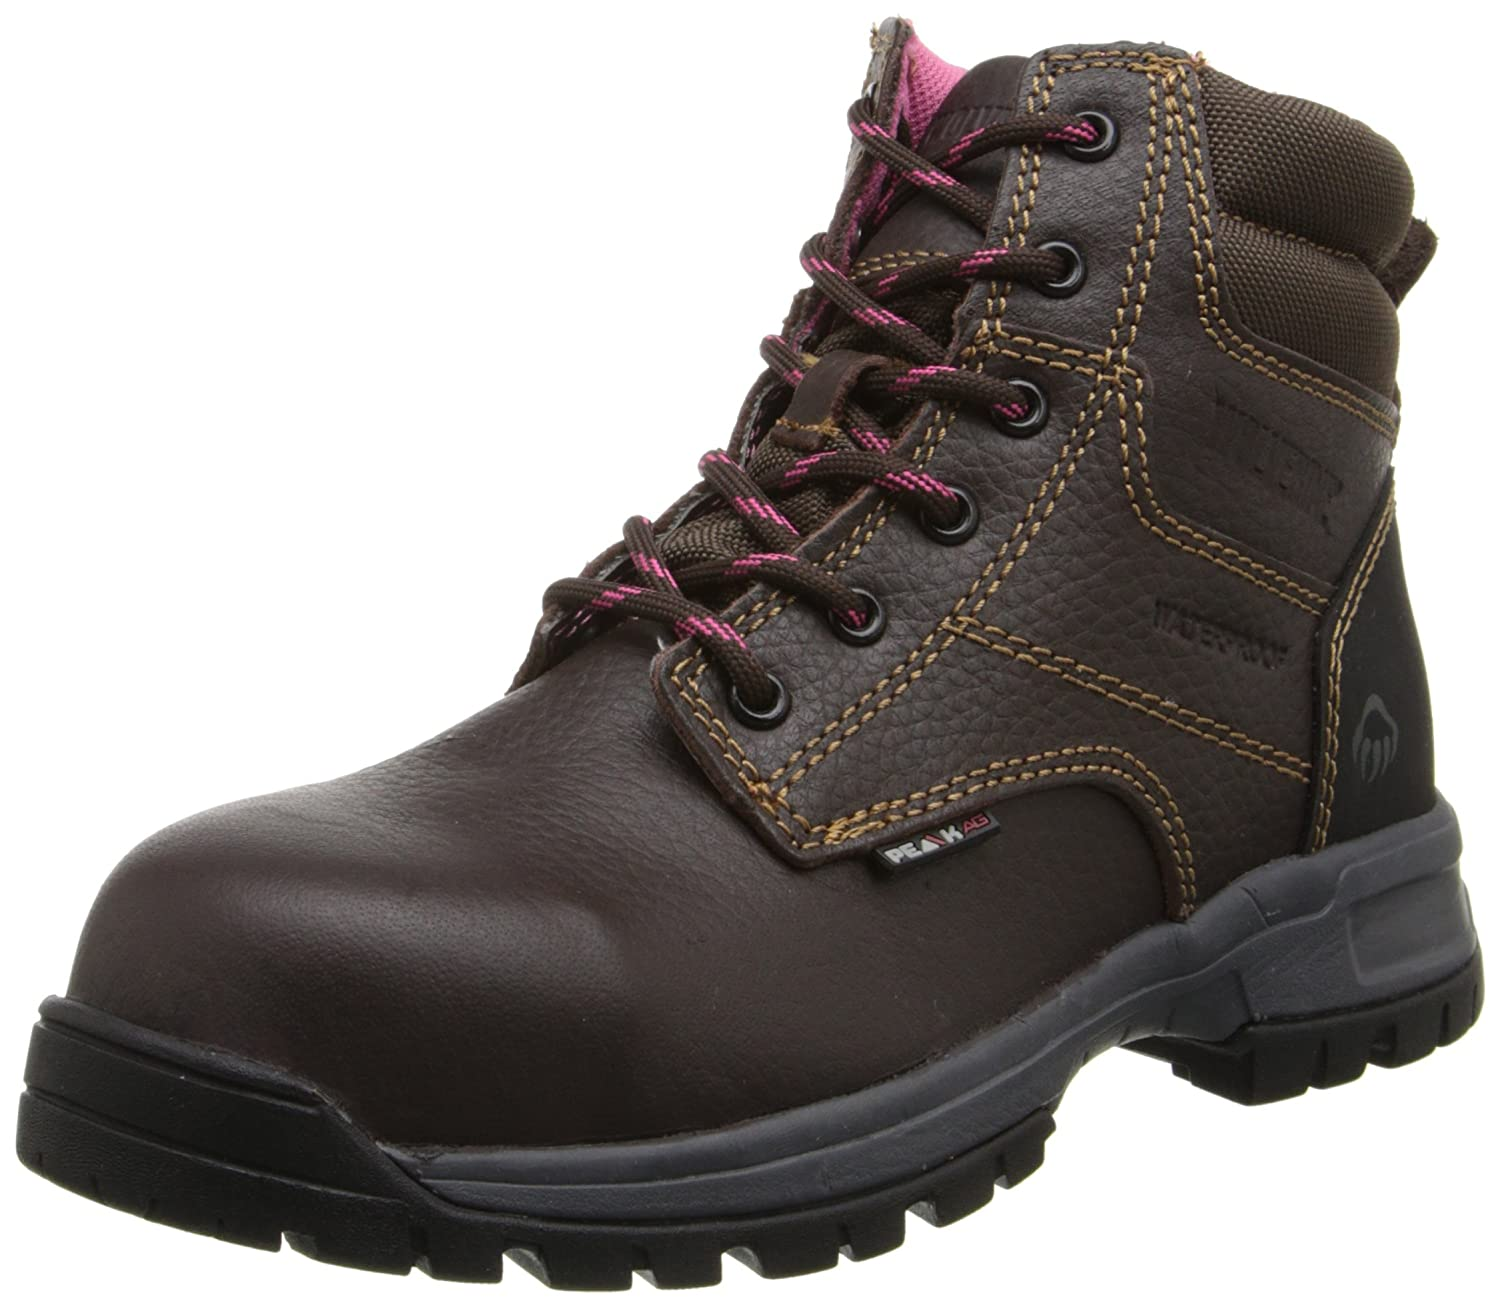 Wolverine Women's Piper Comp-Toe Work Boot B009ZSXDKC 7 W US|Brown